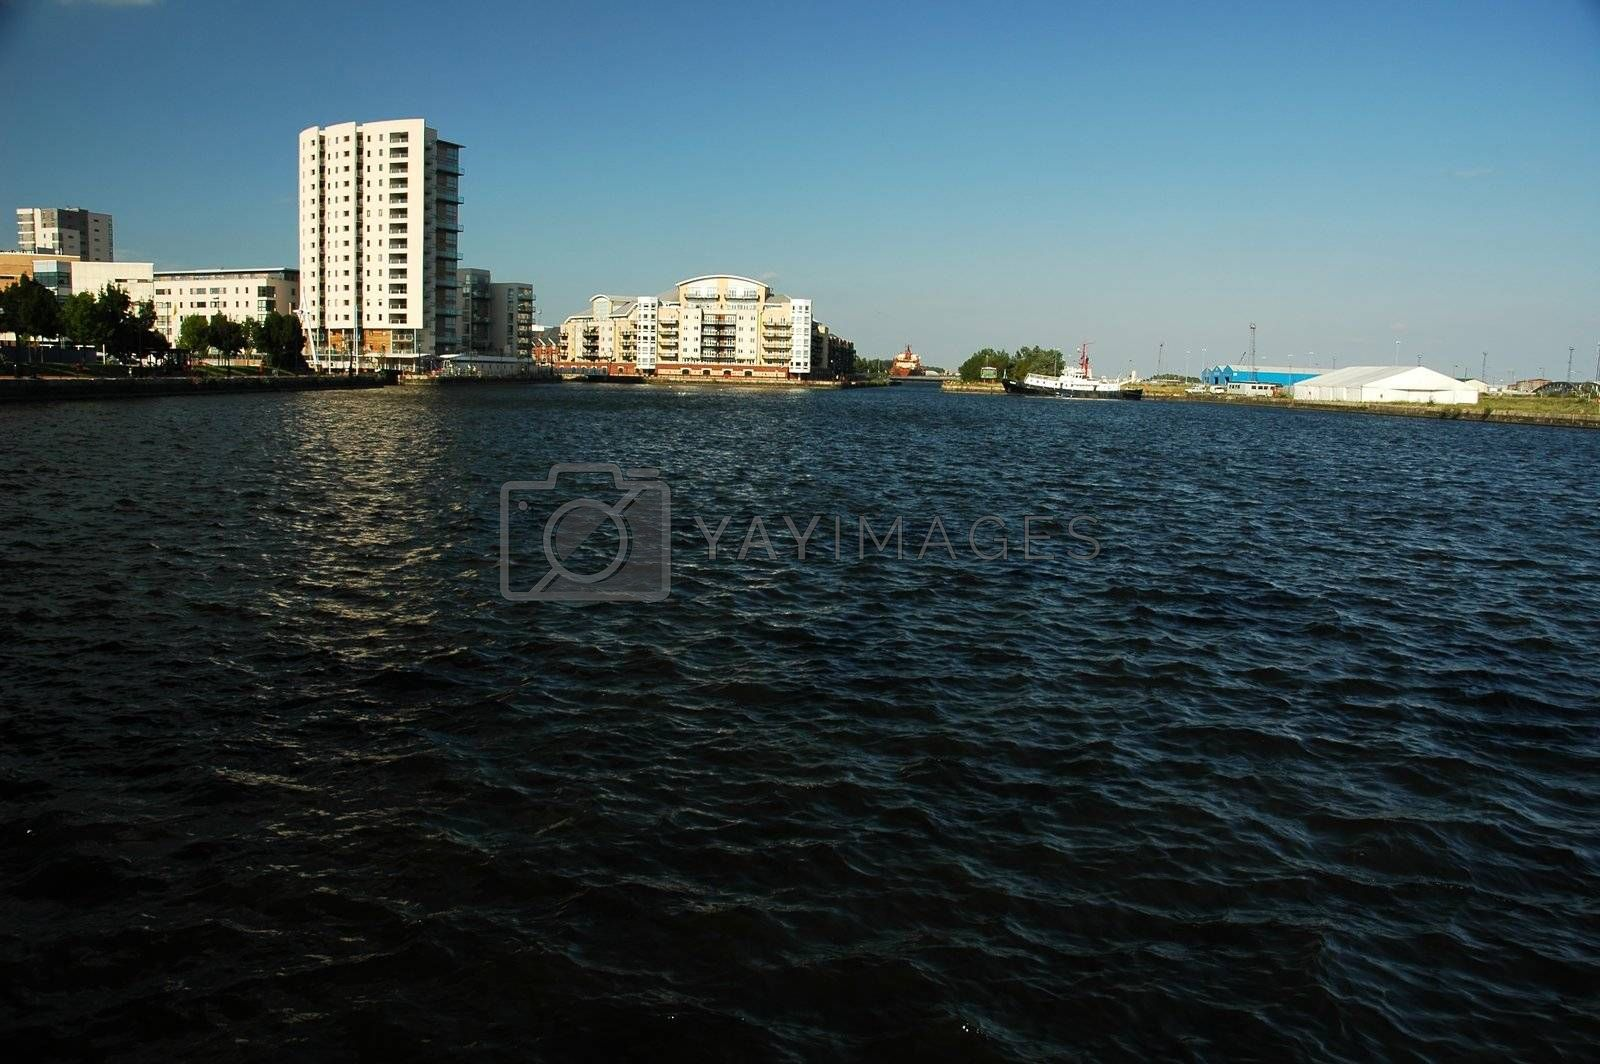 cardiff bay with white high building, horizontally framed shot